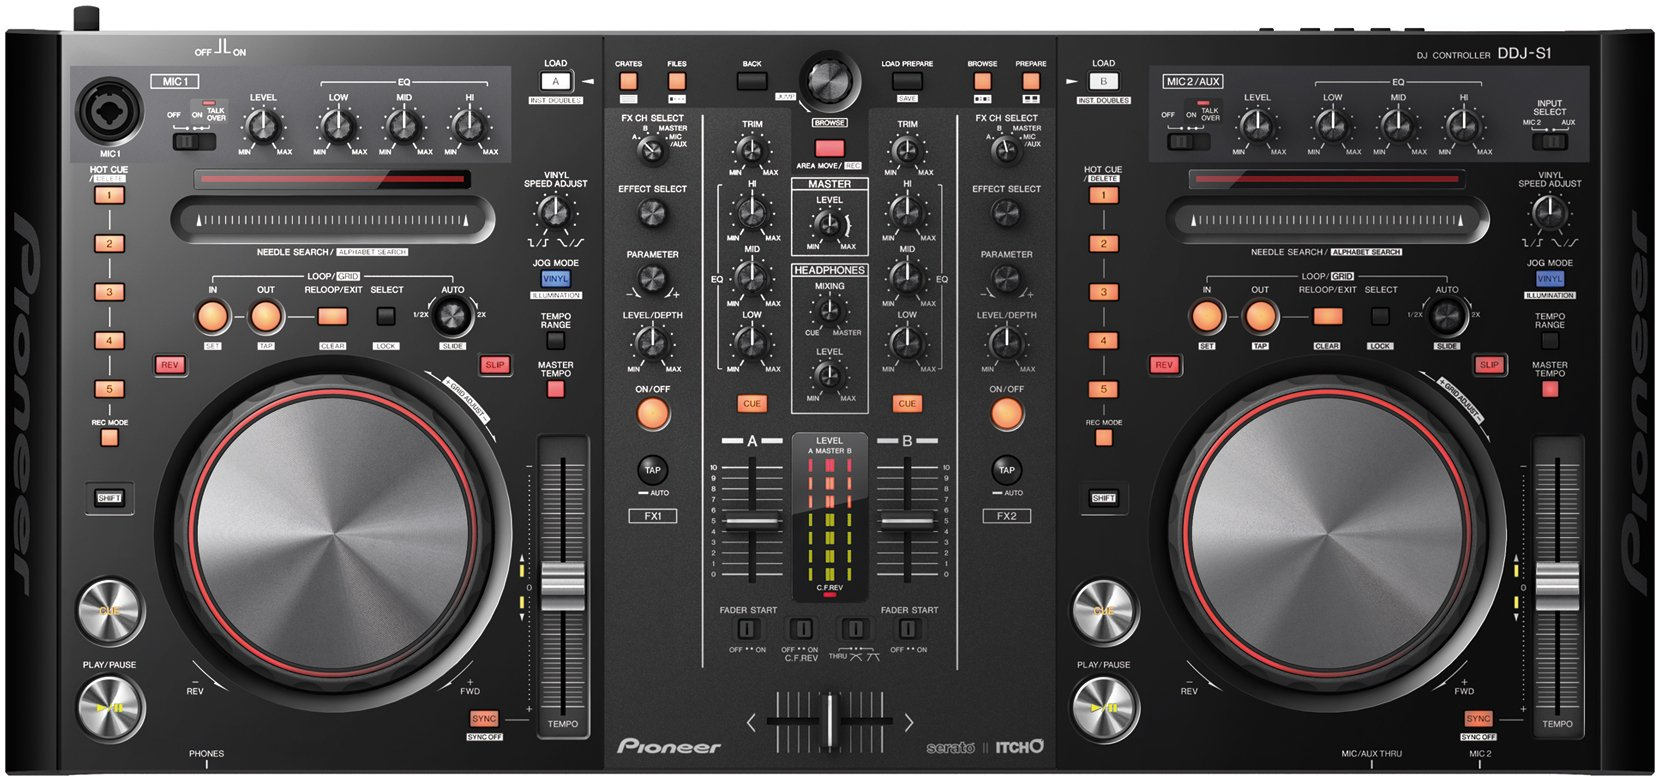 Virtual DJ Controllers: New Hardware for Serato, Traktor from